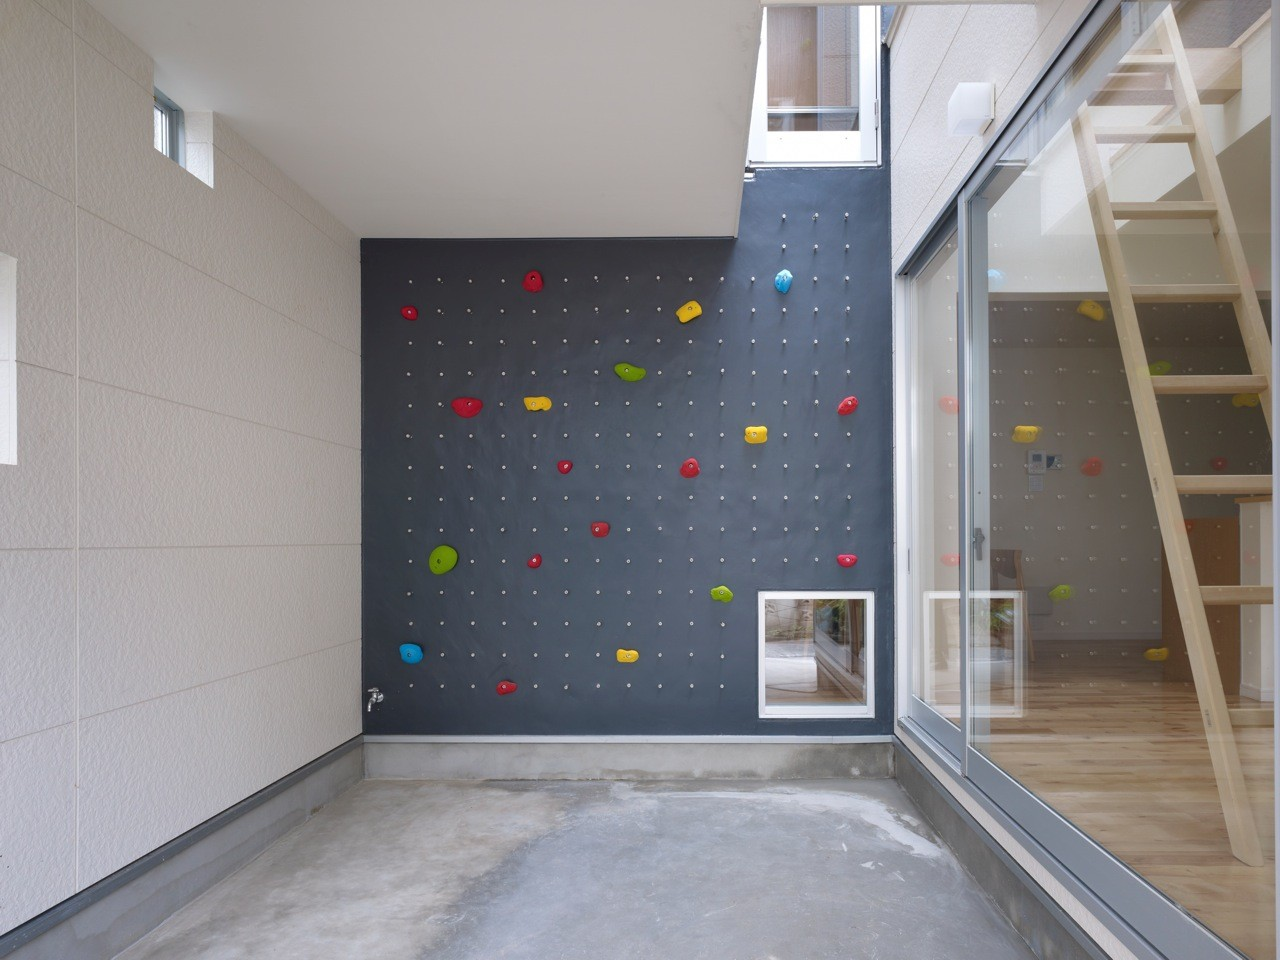 Charmant Climbing Wall 1024x768 22 Awesome Rock Climbing Wall Ideas For Your Home